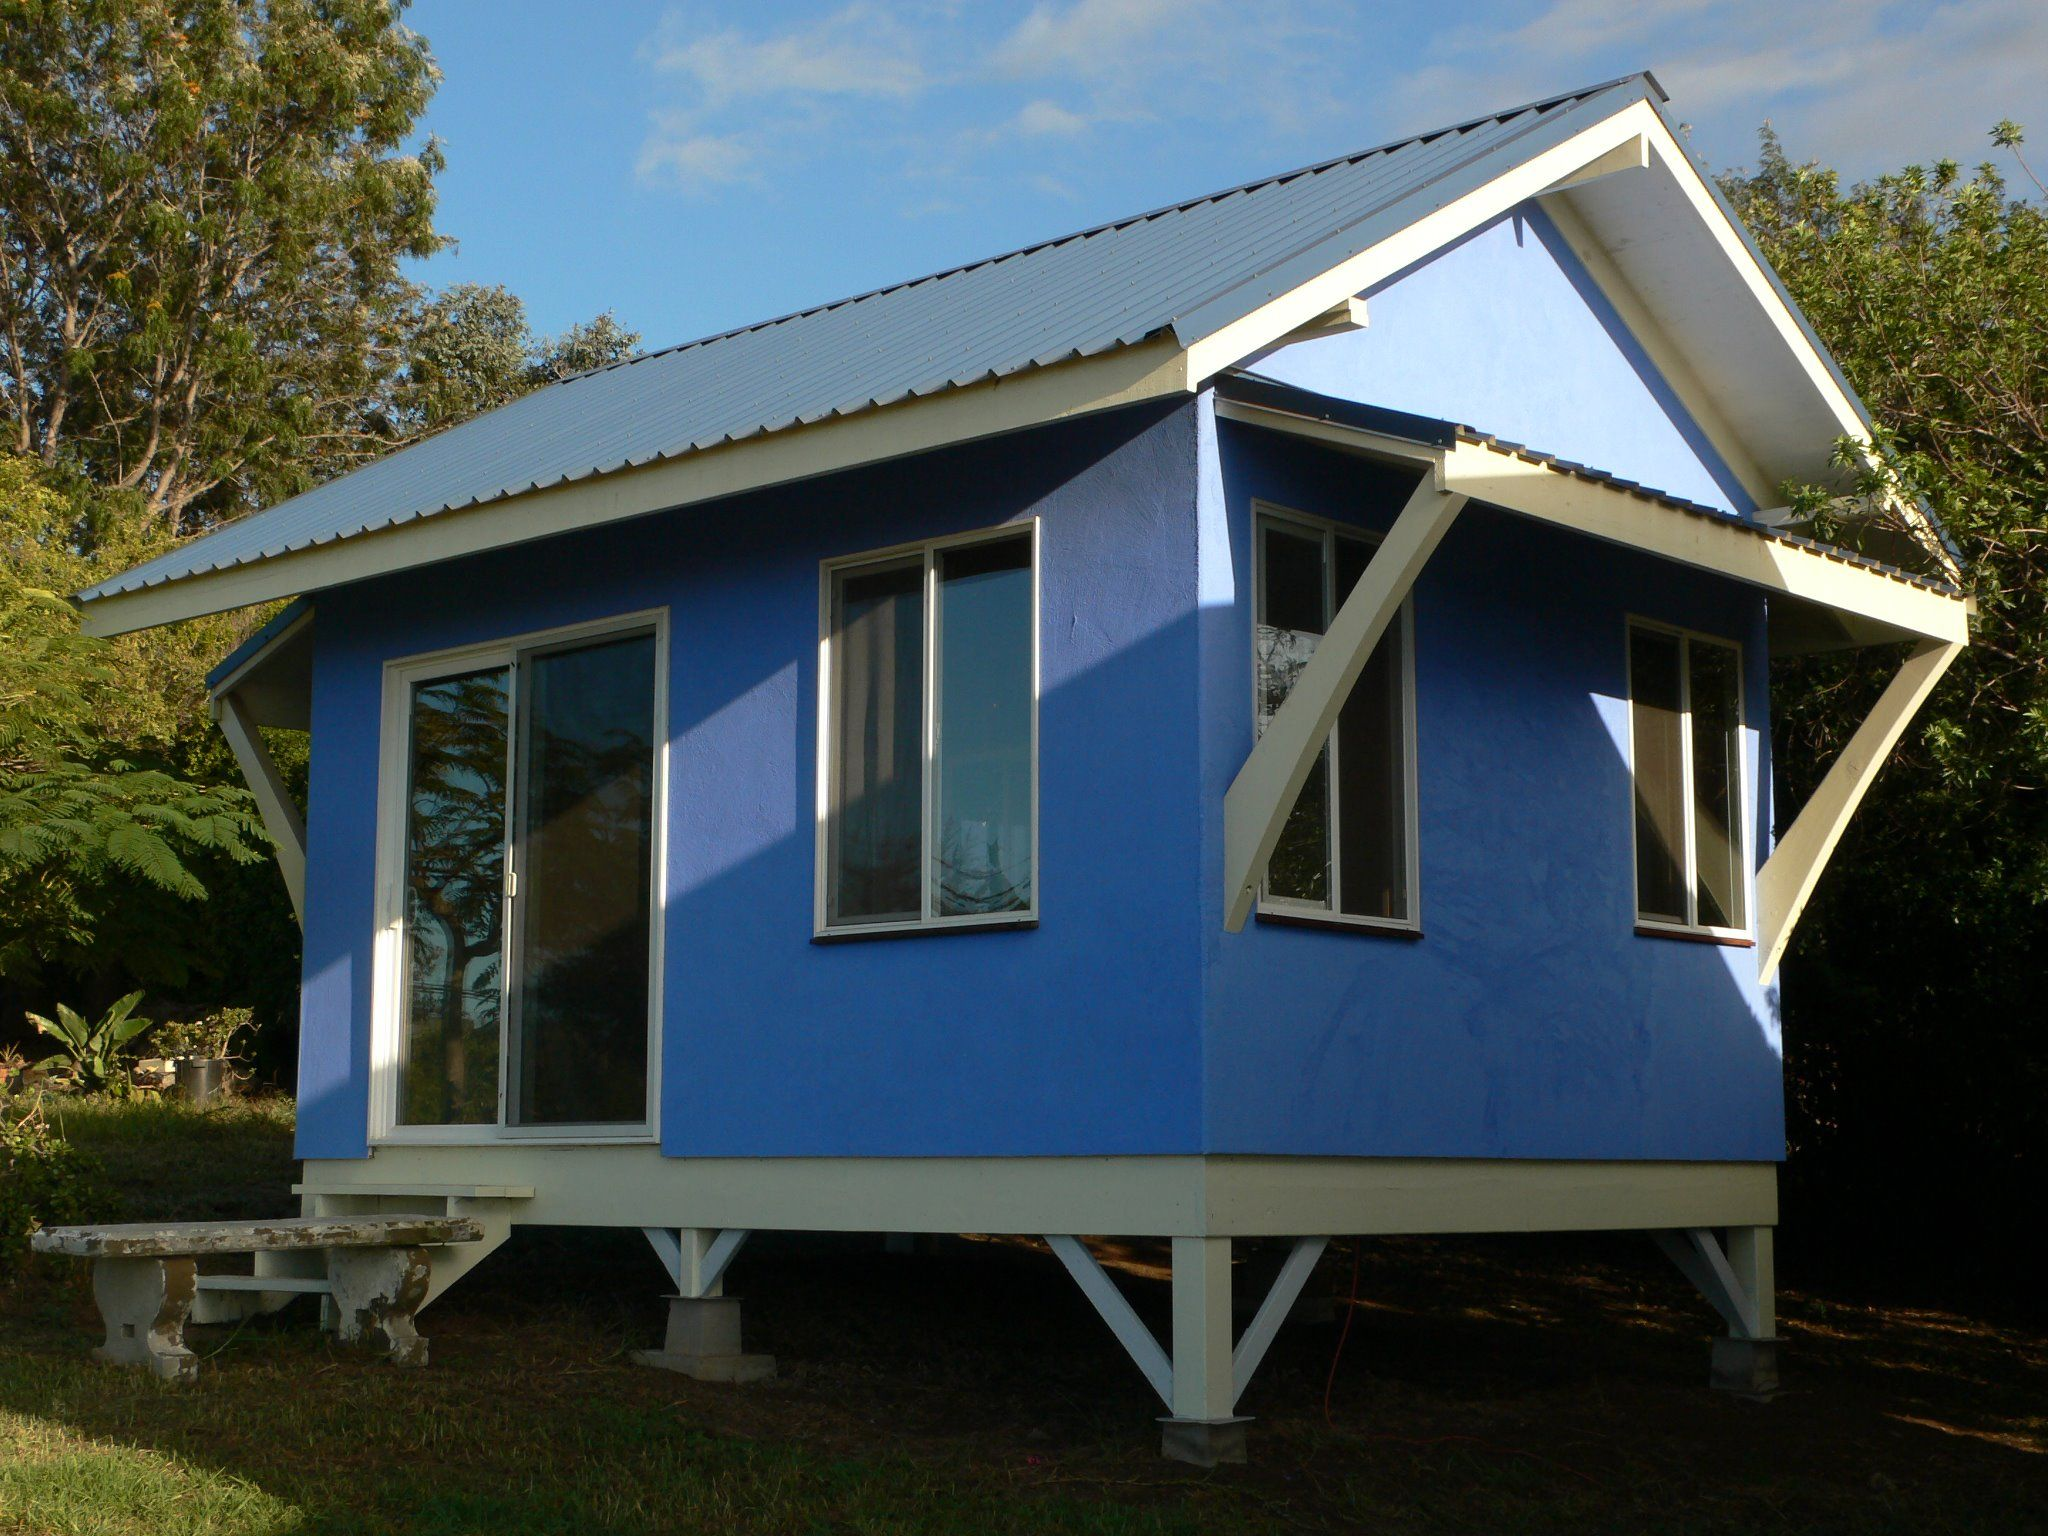 50 Photos Of Small But Beautiful And Low Cost Houses That You Can